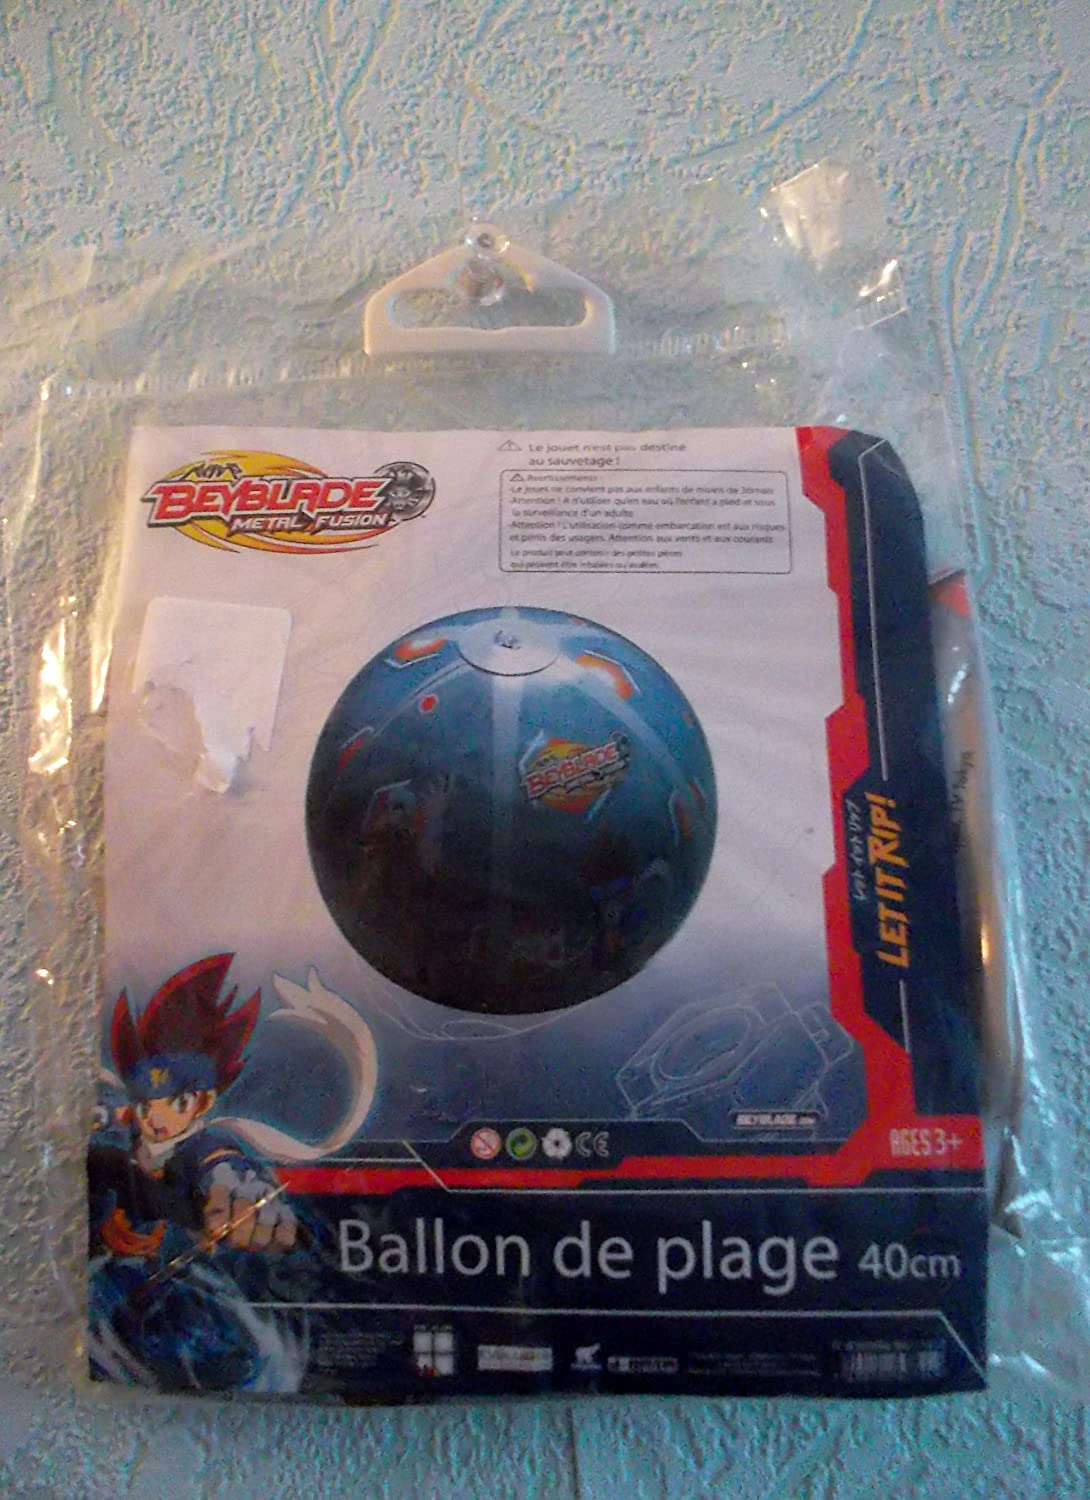 Hasbro Balón Hinchable de Playa Beyblade 40 cm: Amazon.es ...